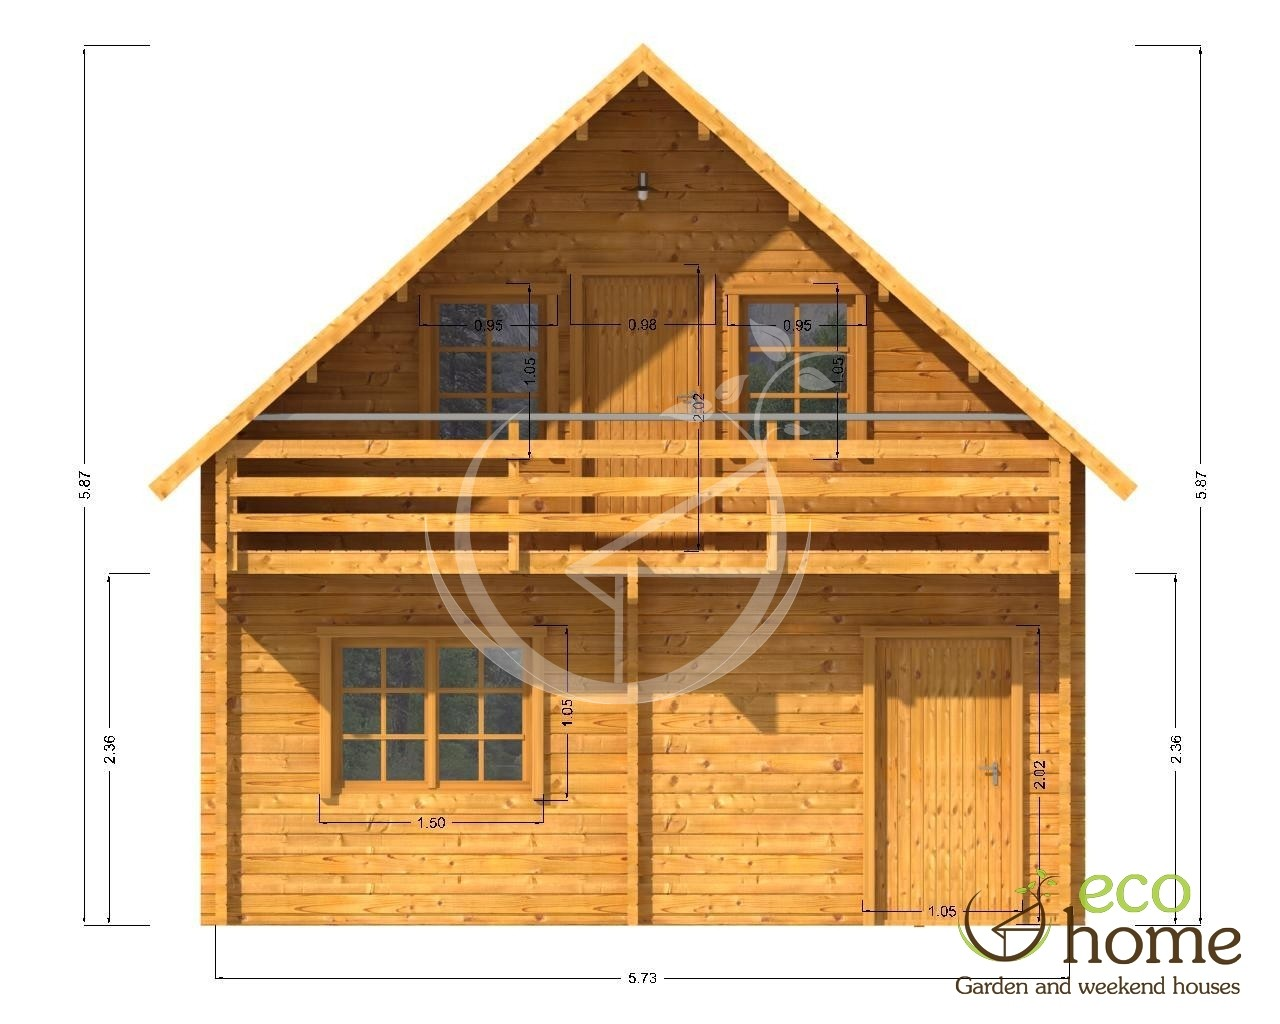 Two storey log cabin verona eco home for Two storey log cabin